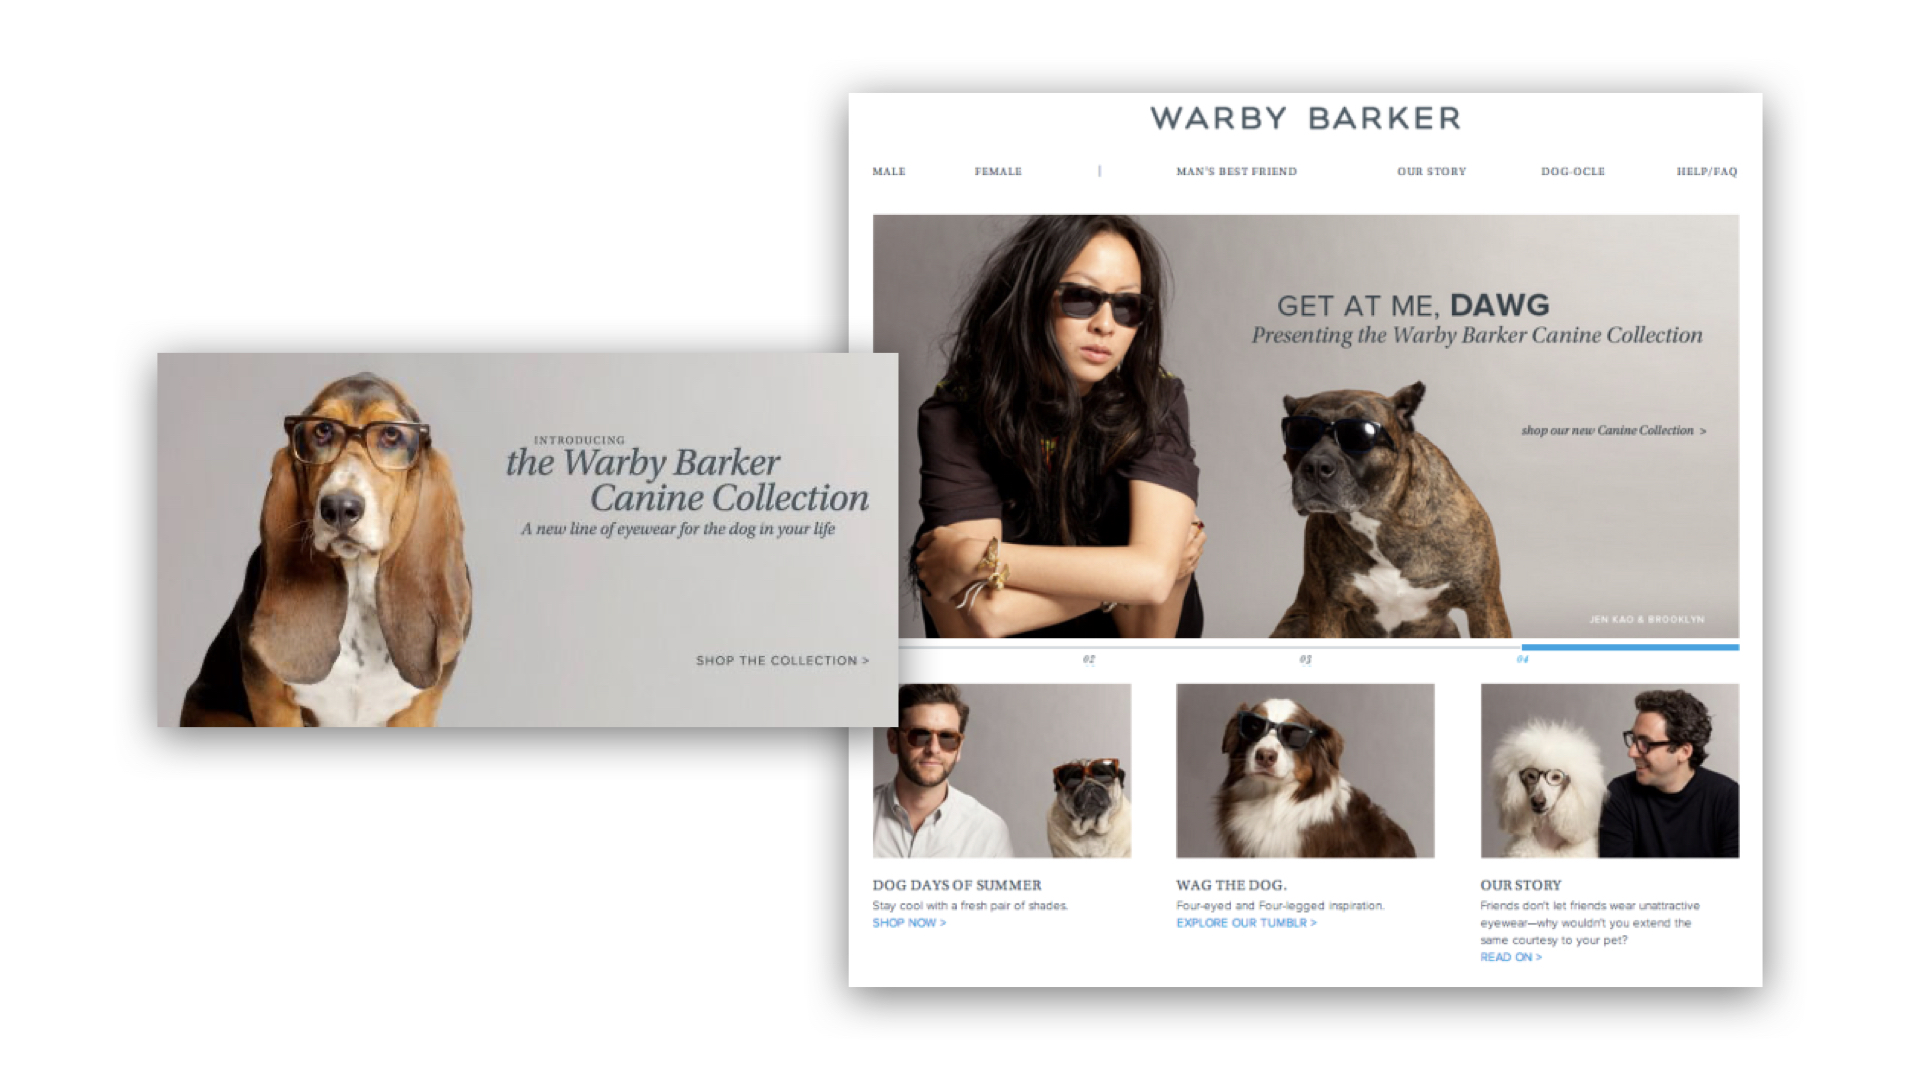 Warby Parker launched a spin-off joke site in Warby Barker for April Fool's